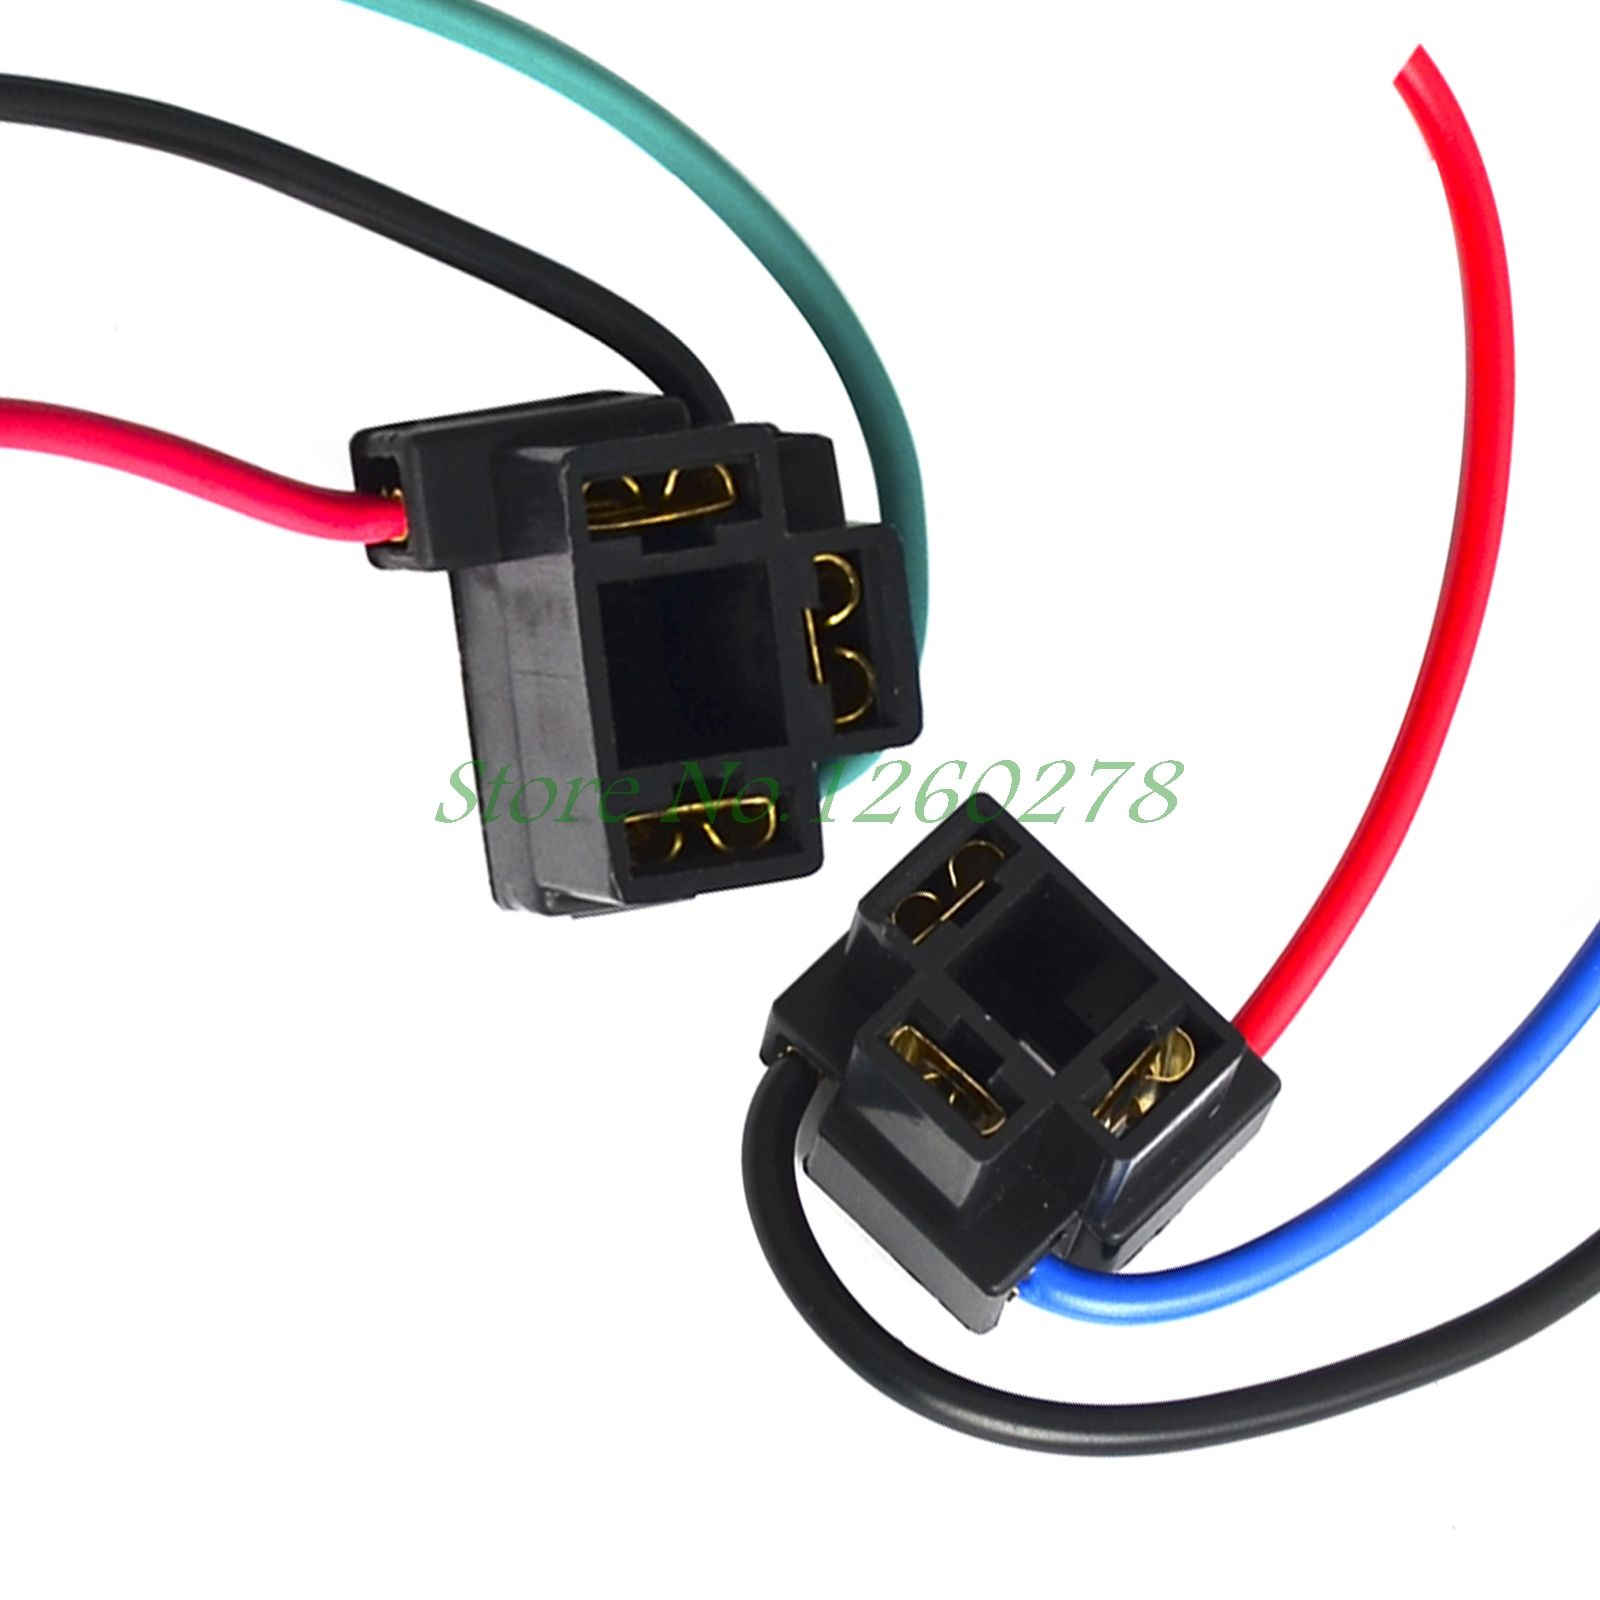 2pcs H4 Female Adapter Wiring Harness Sockets Wire Harness Connector For Headlights Car Lights Plug Socket Headlights